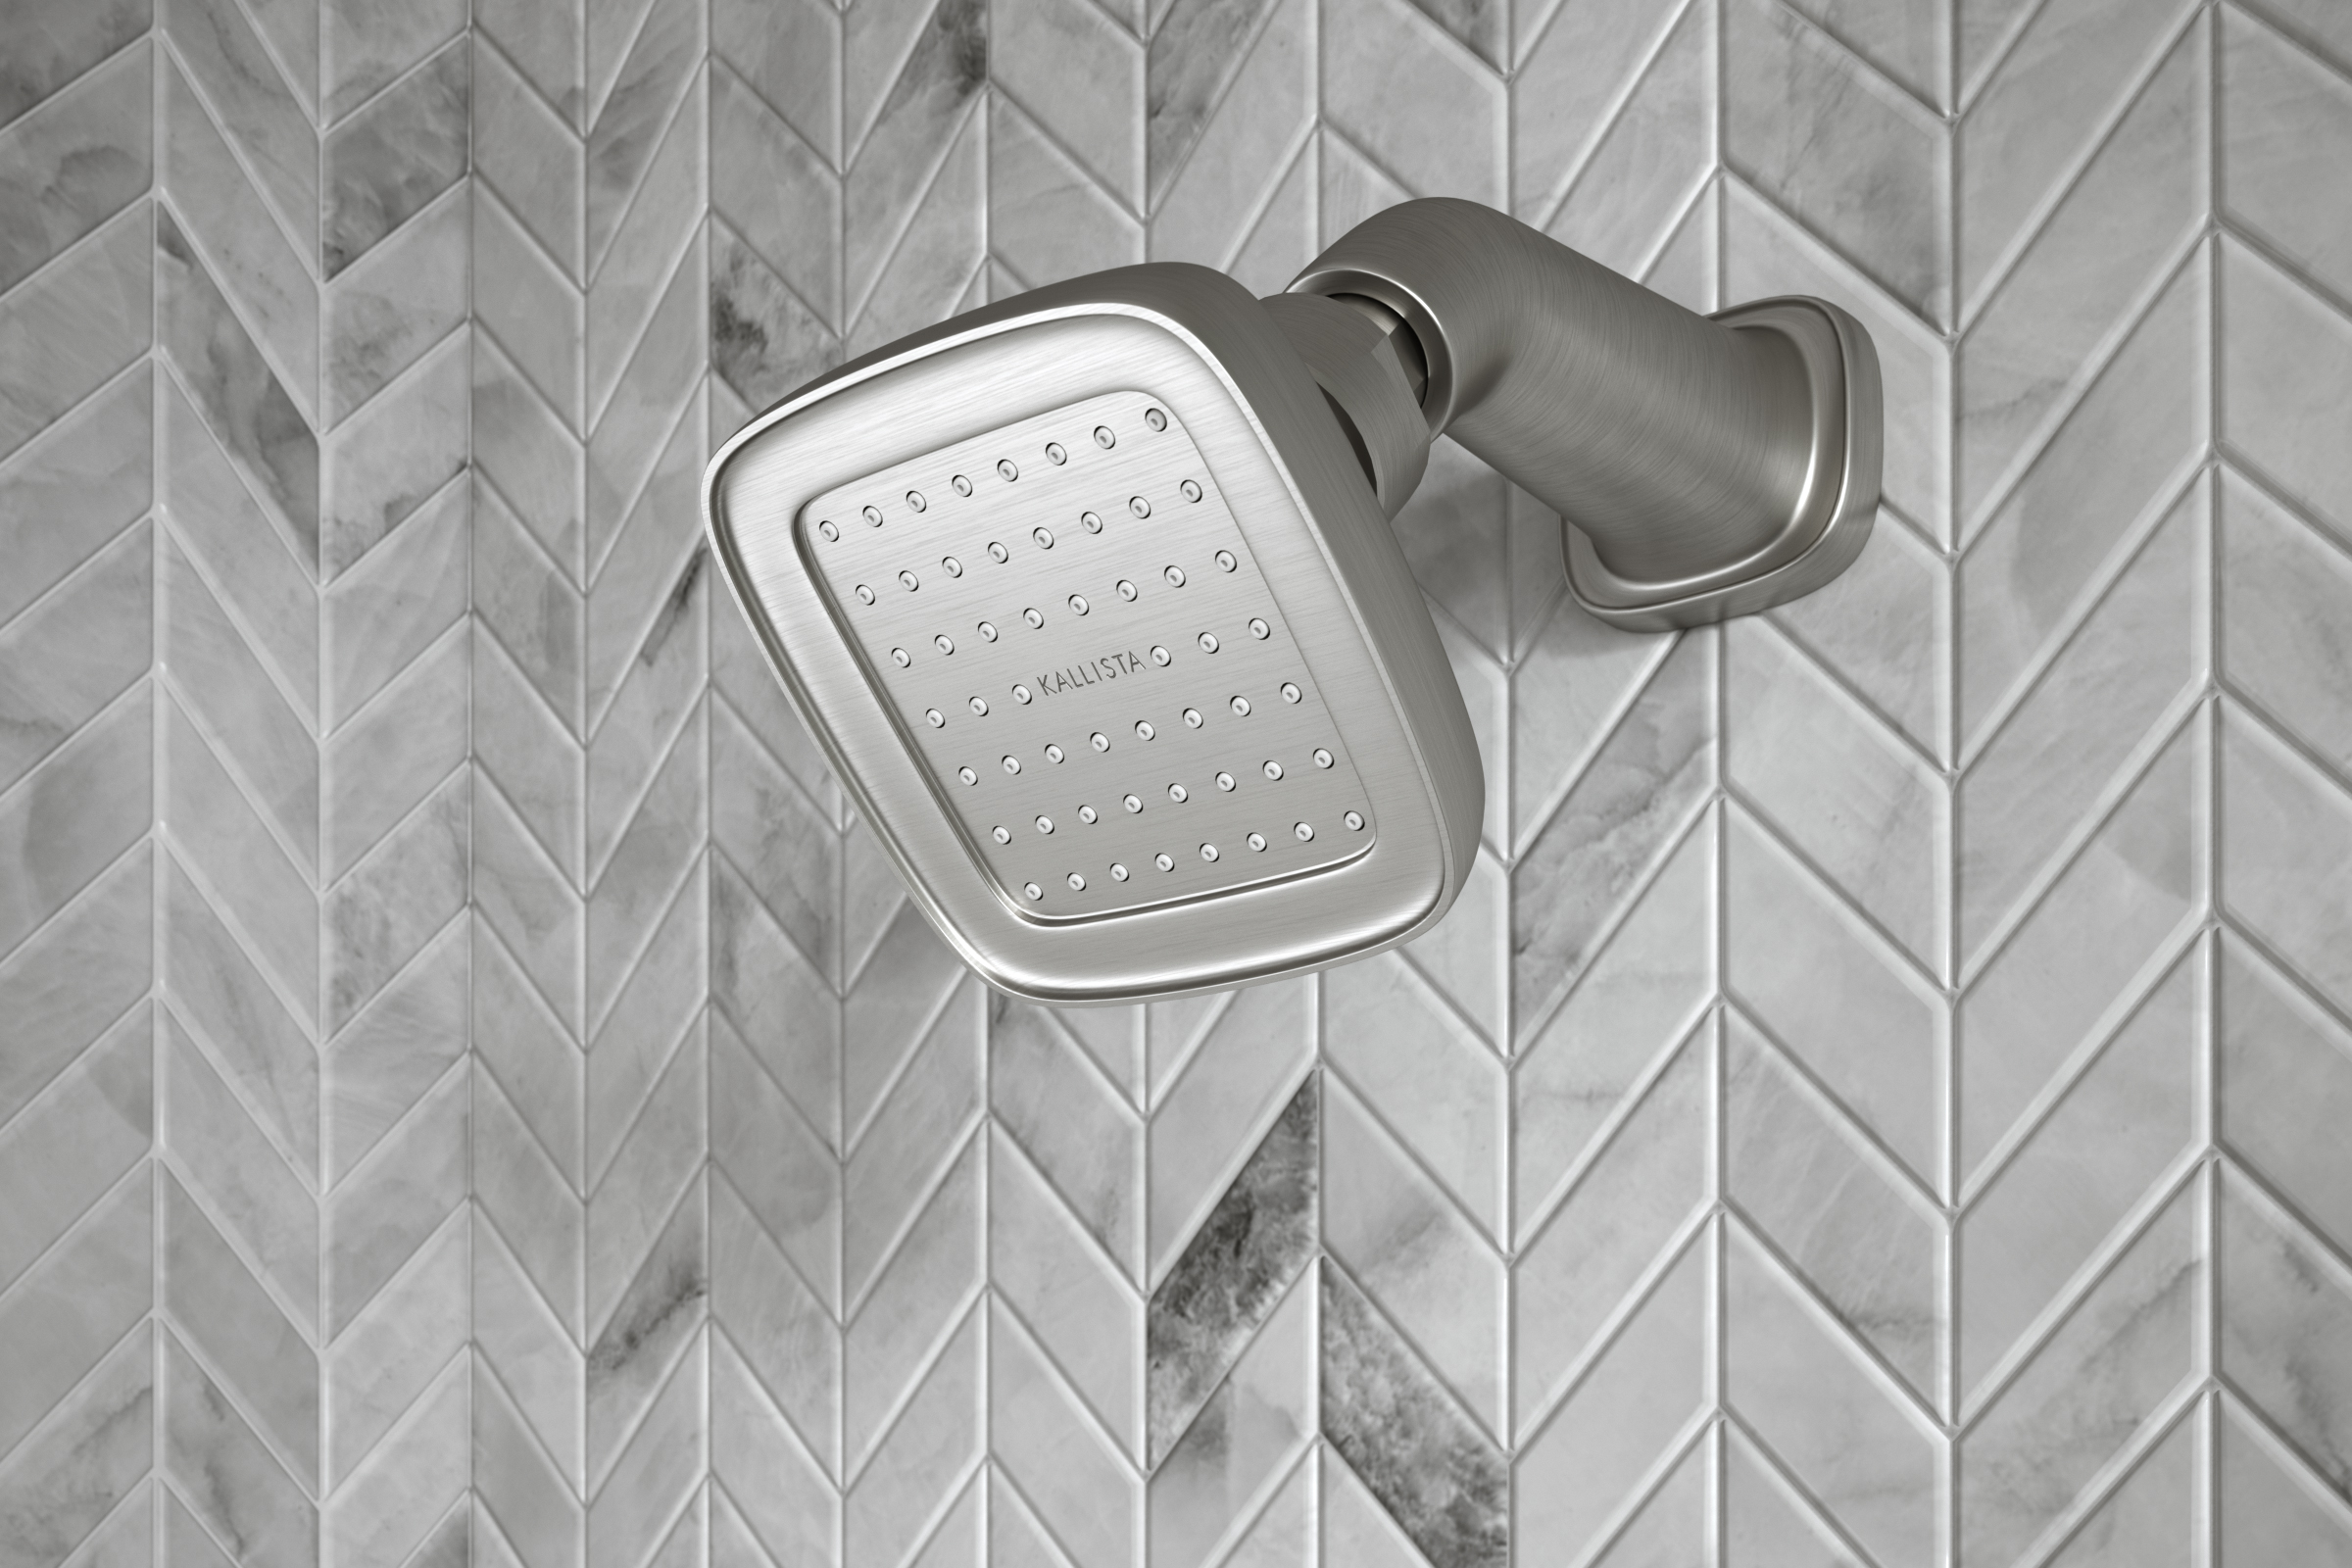 Kallista_shower_head.jpg